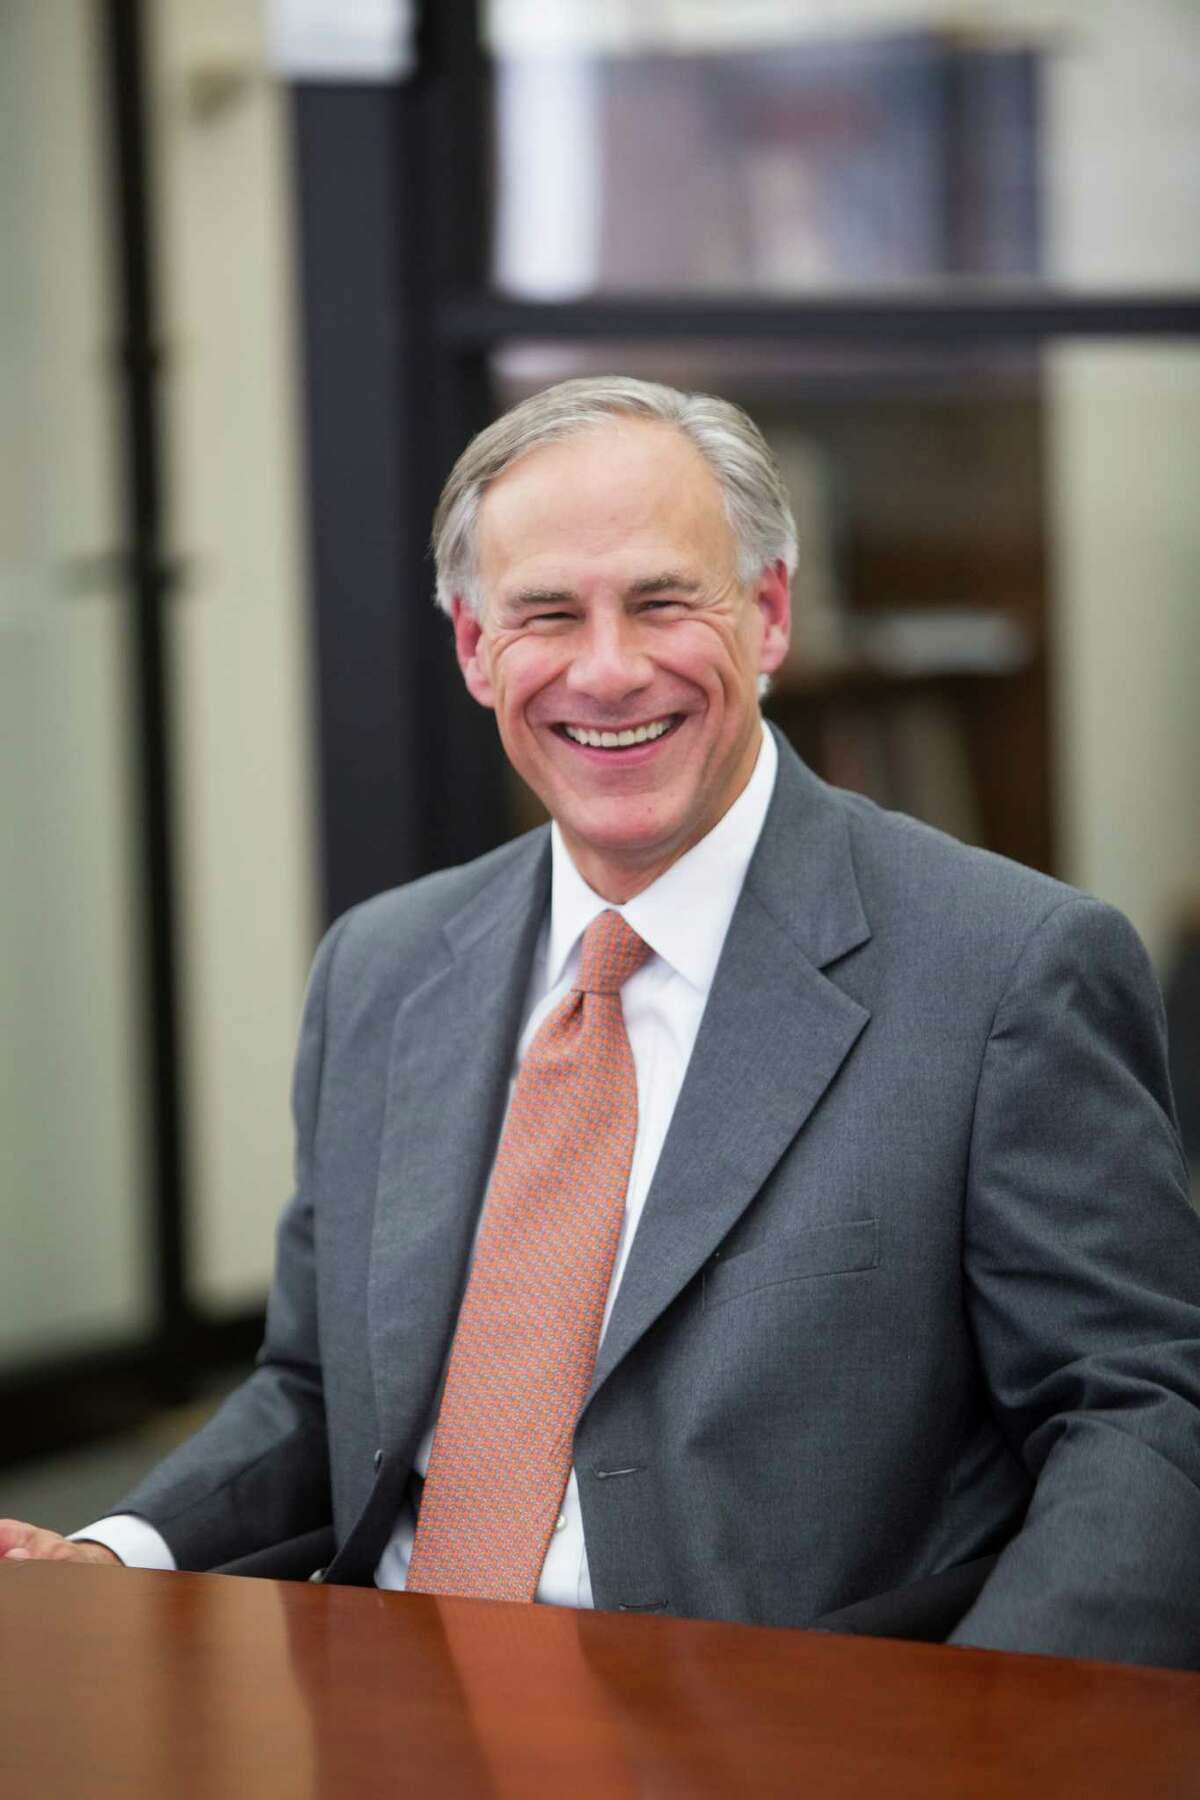 Texas Attorney General Greg Abbott visits the Houston Chronicle editorial board on Thursday. Abbott is running against Wendy Davis in the Nov. 4 elections.